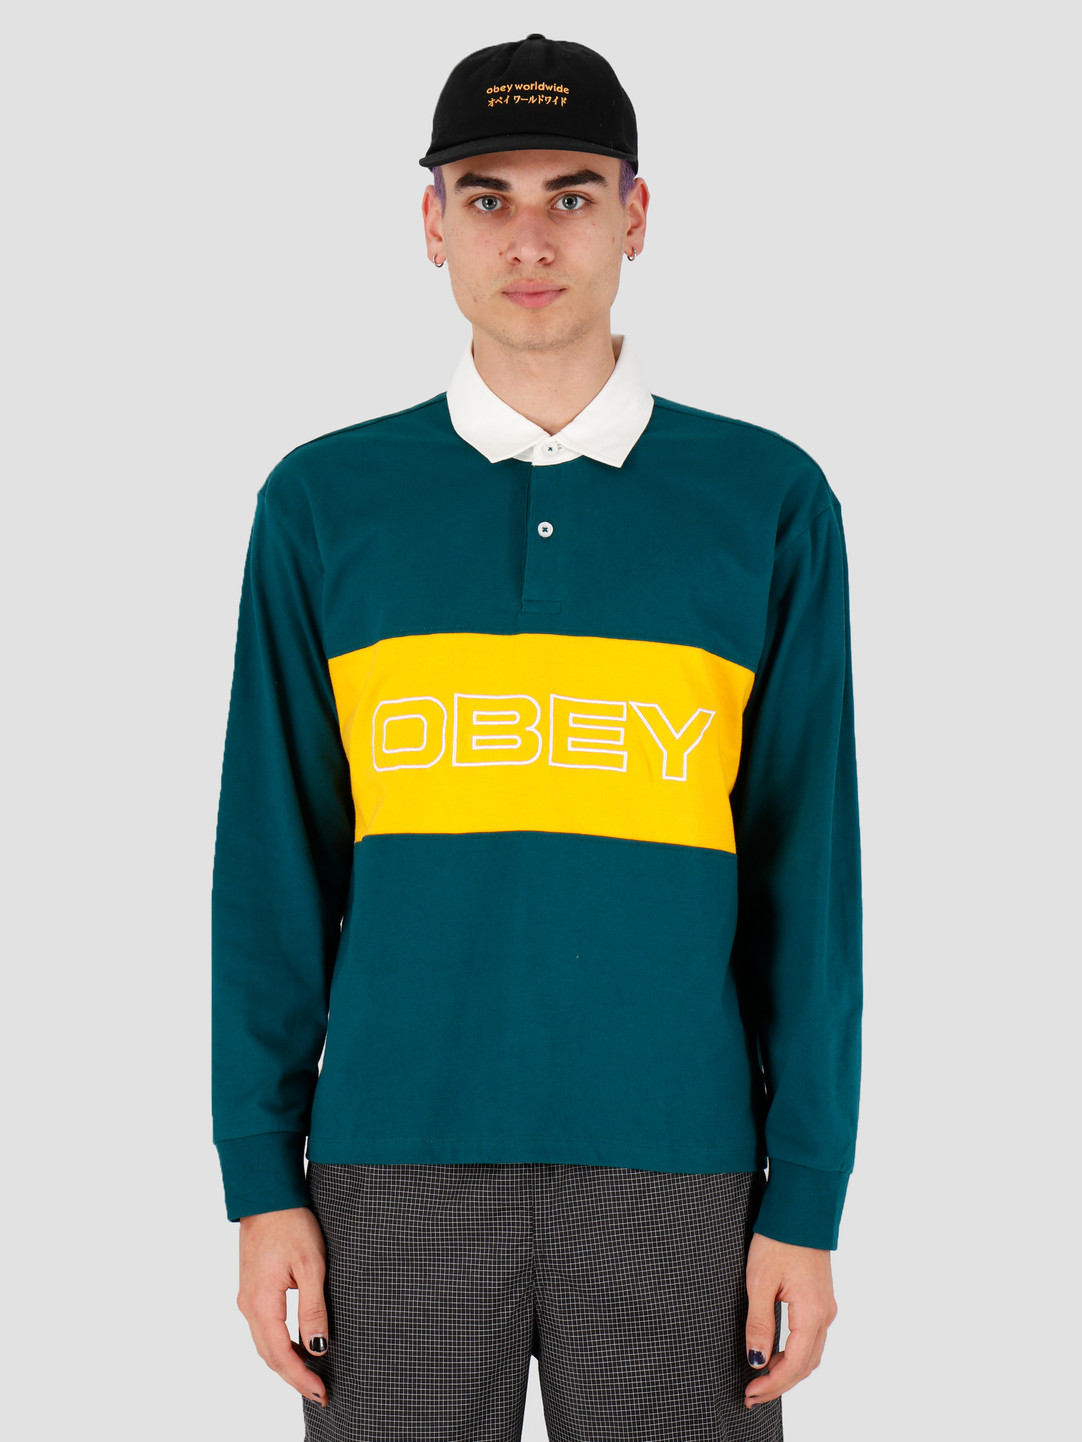 Obey Obey Ignite Classic Polo LS Deep teal multi 131040028DPT